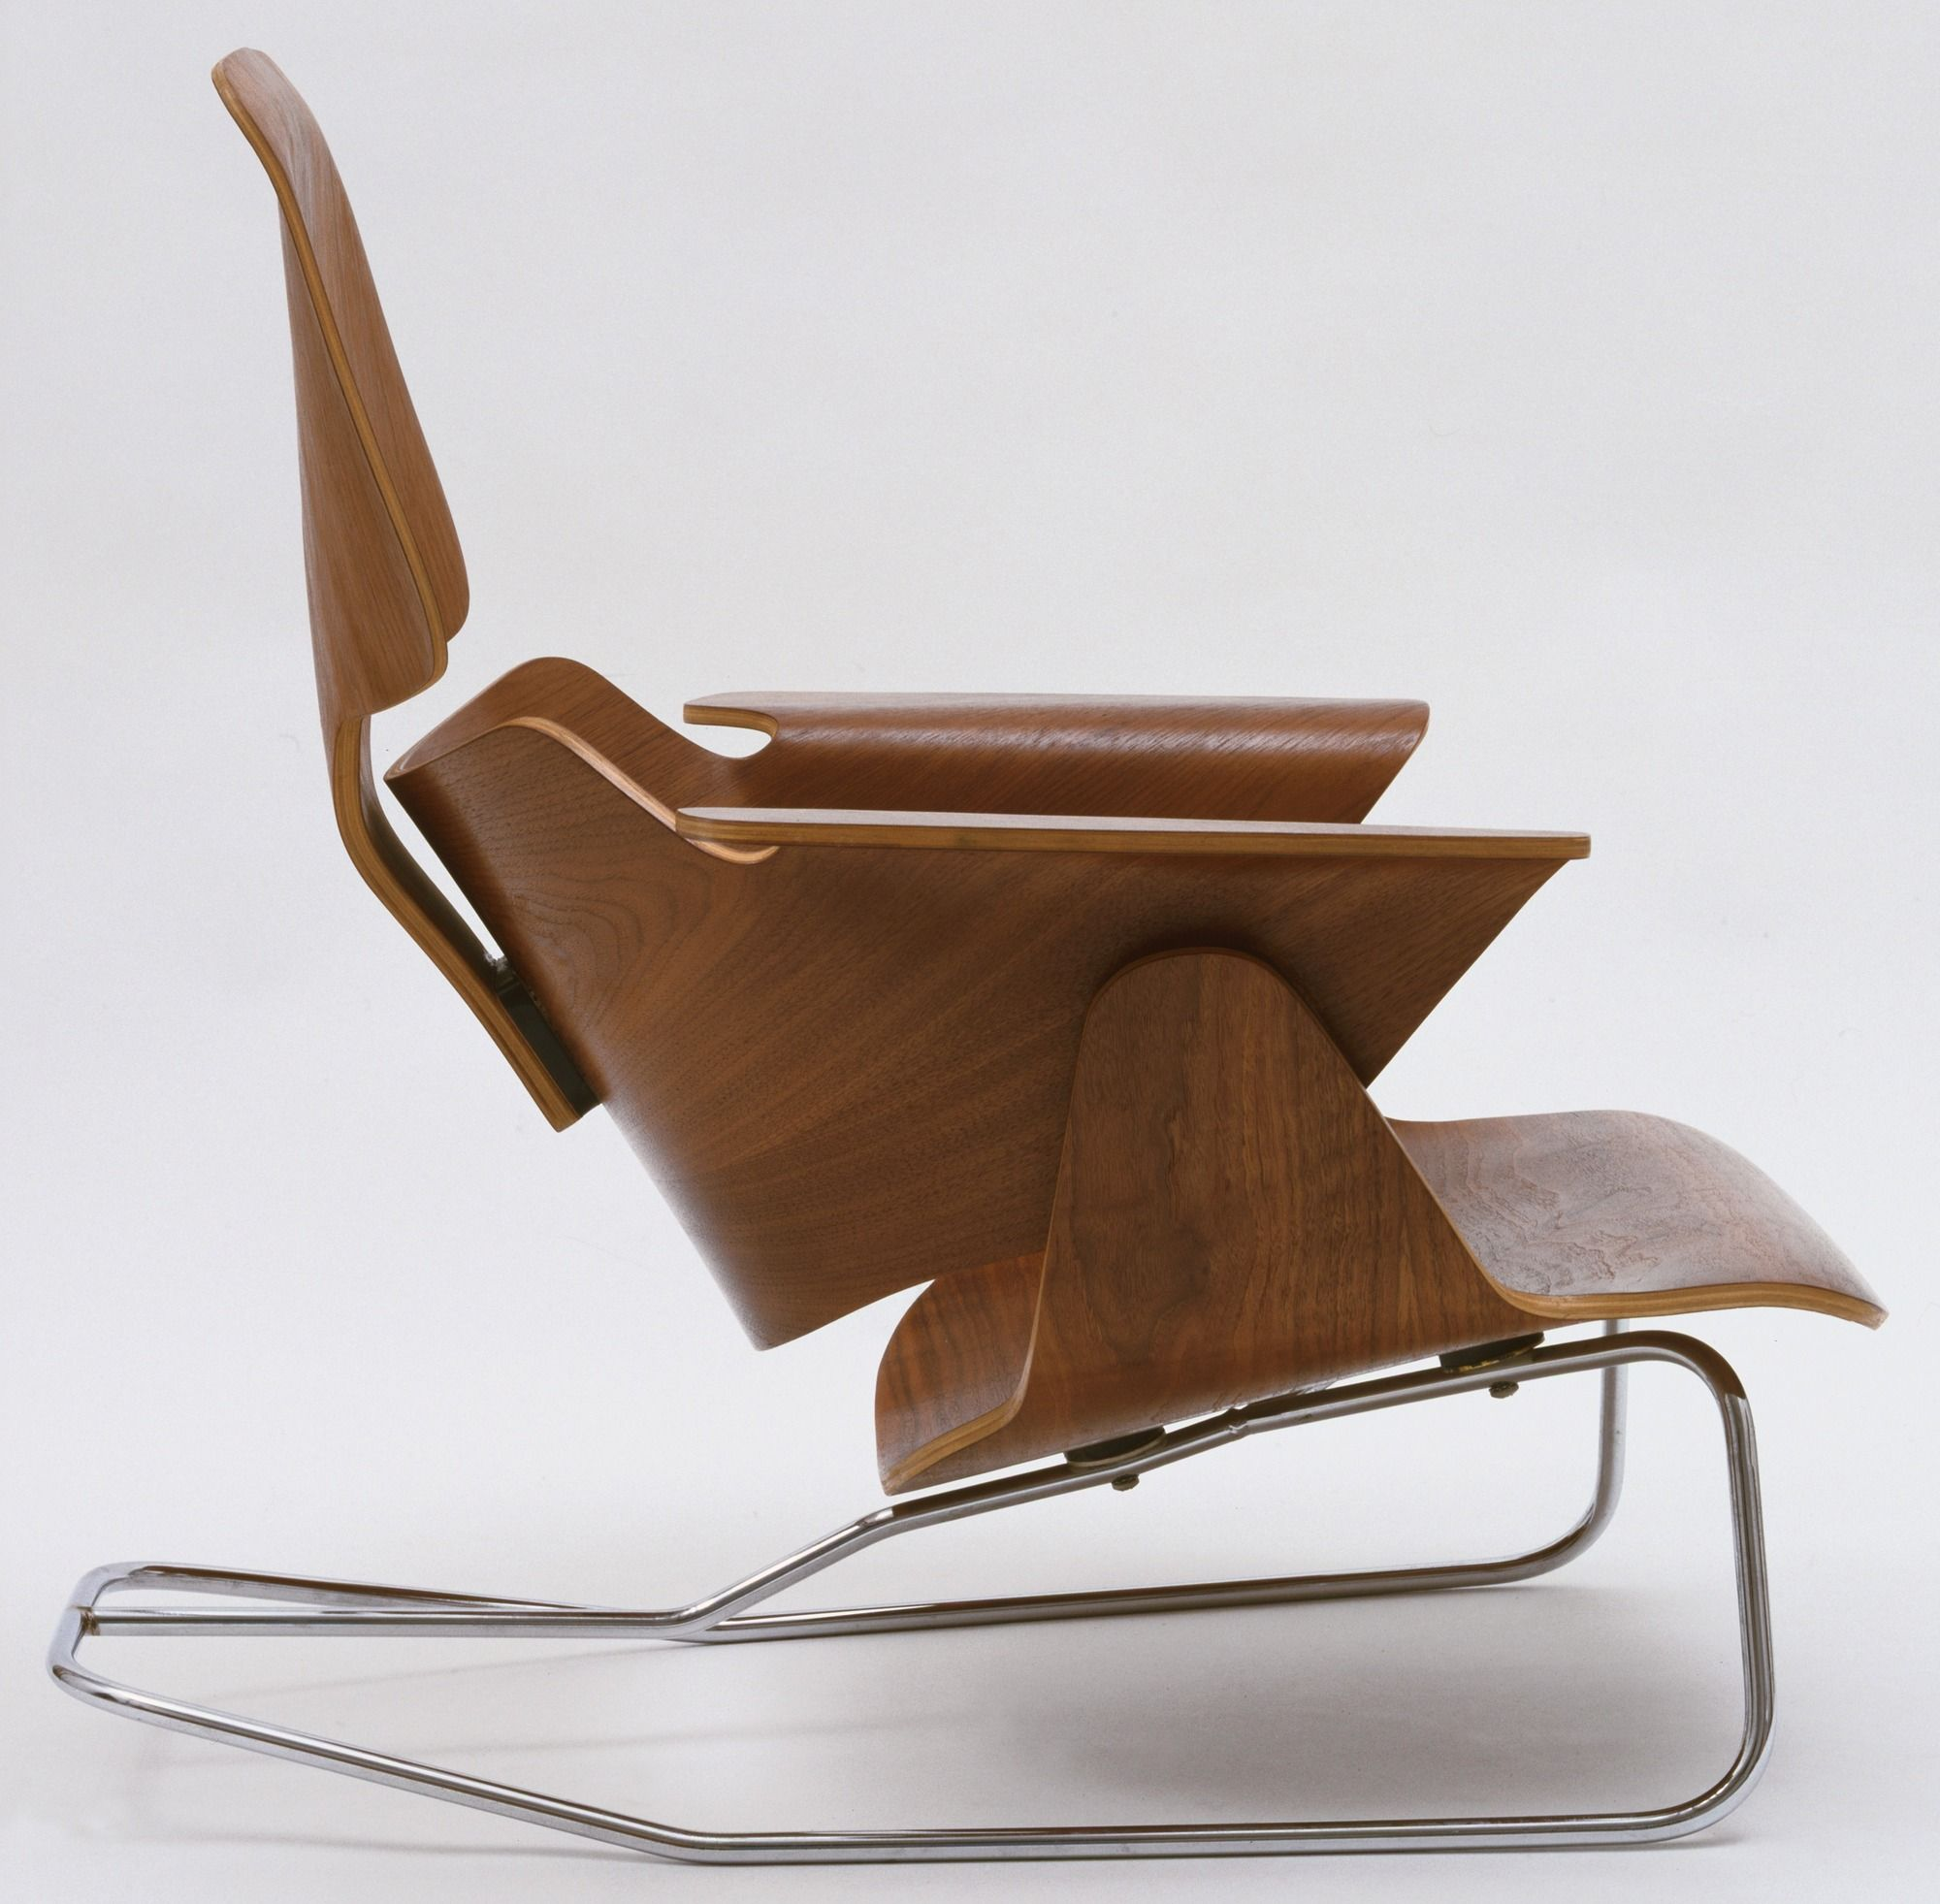 Chair Experimental Design Swing Nest Charles Eames Ray Lounge C